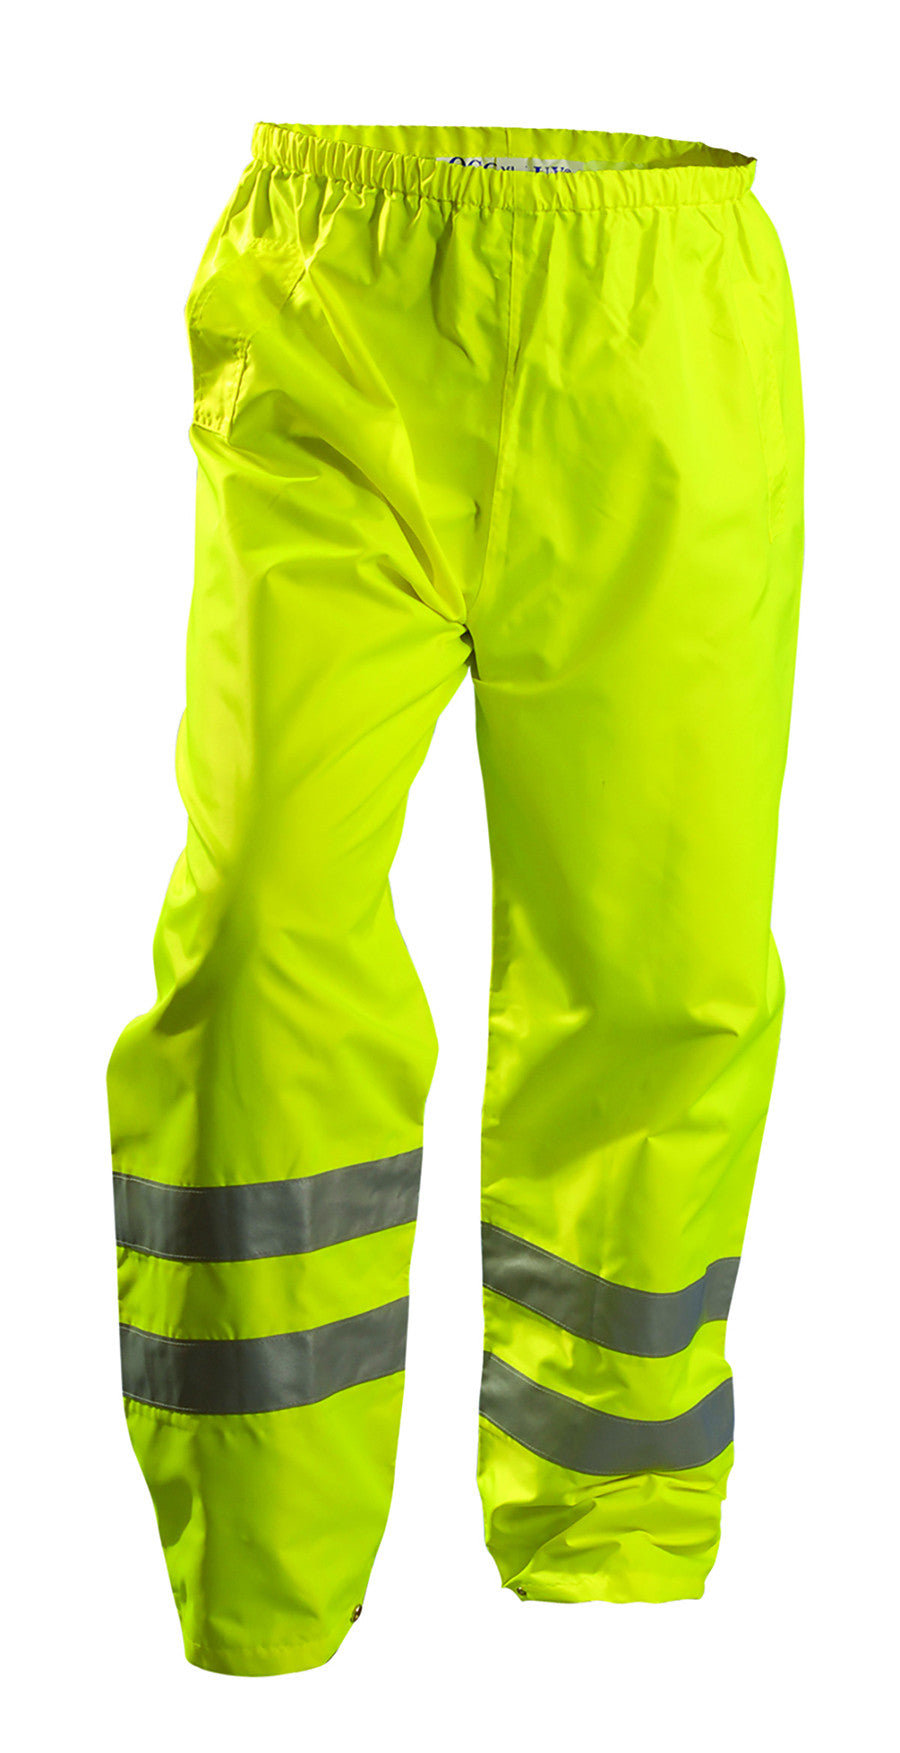 Premium Pvc Coated Pants